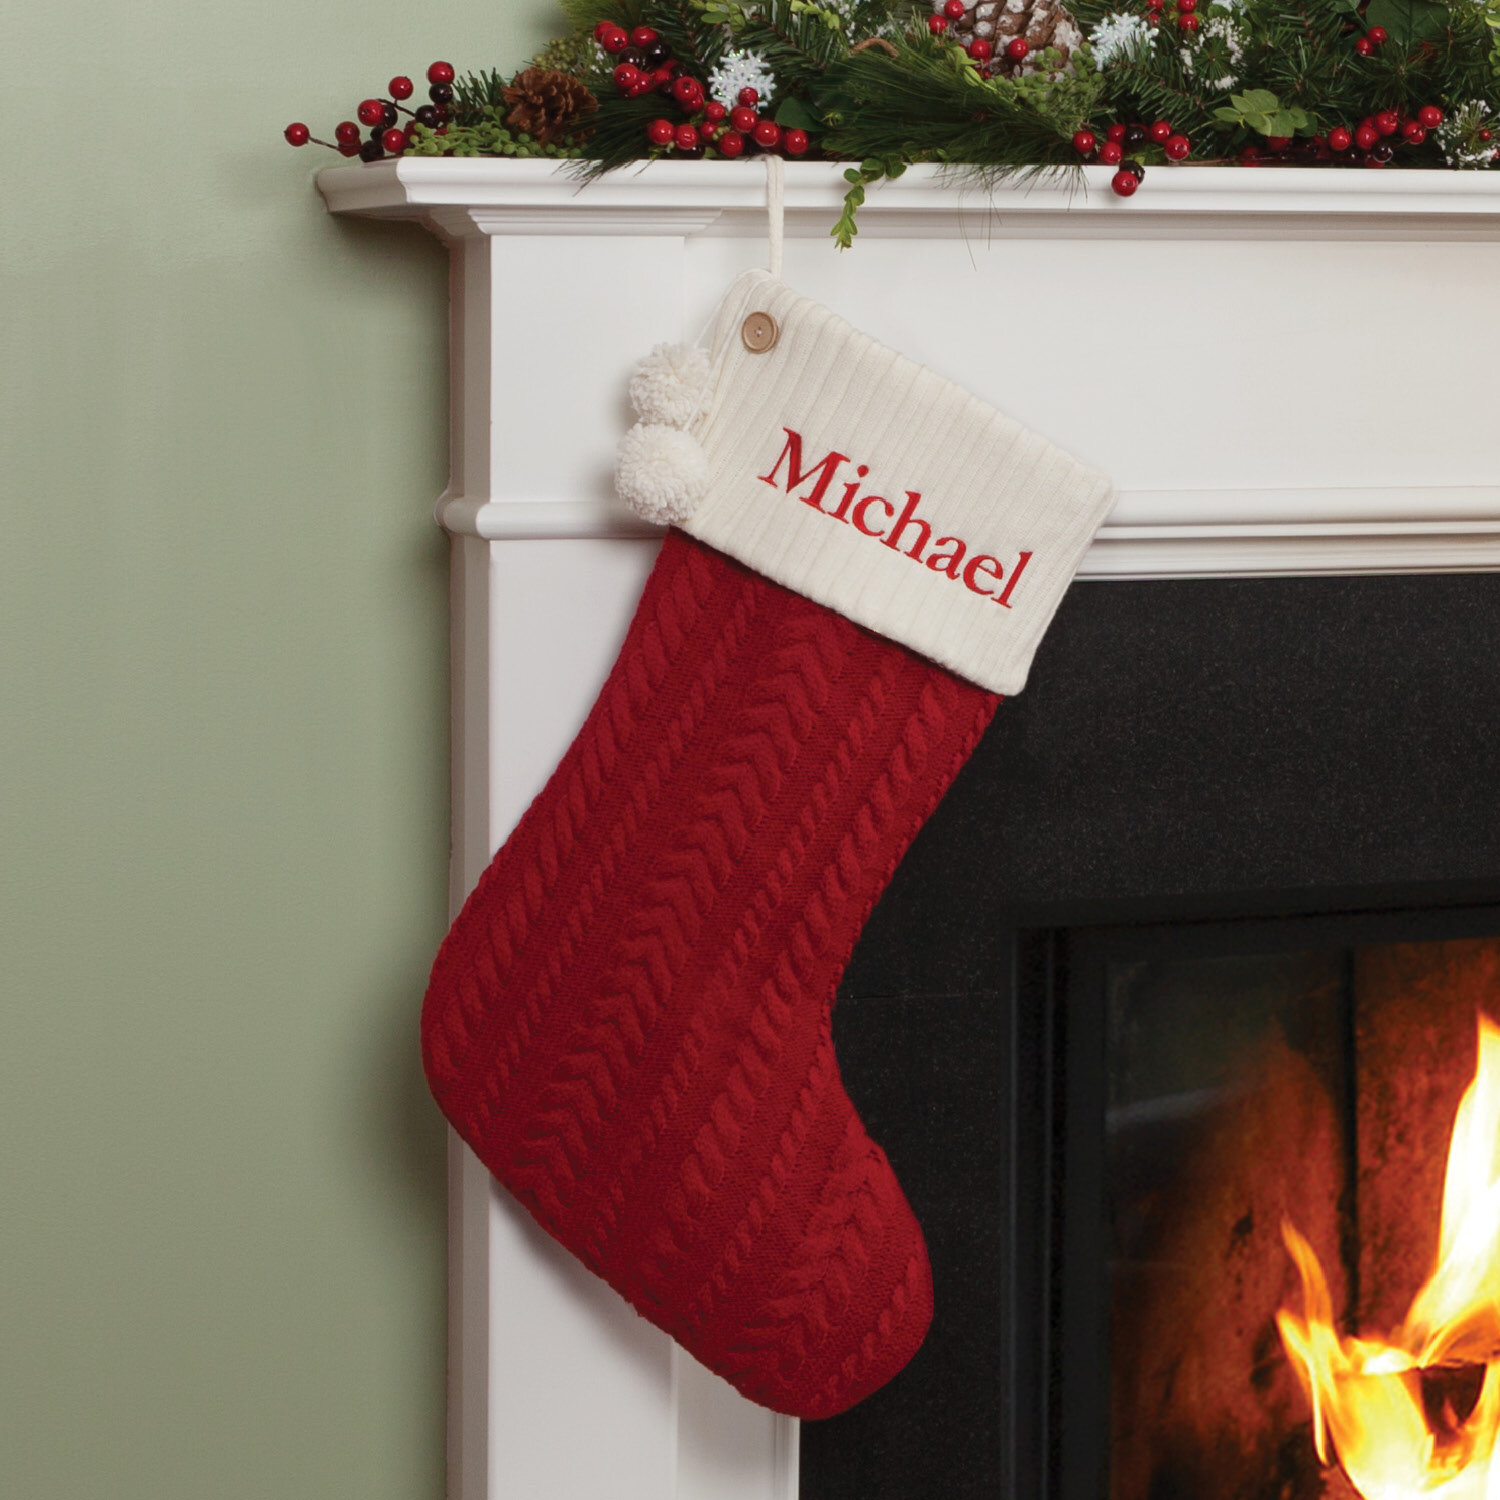 Cable Knit Christmas Stockings.Cable Knit Personalized Stocking